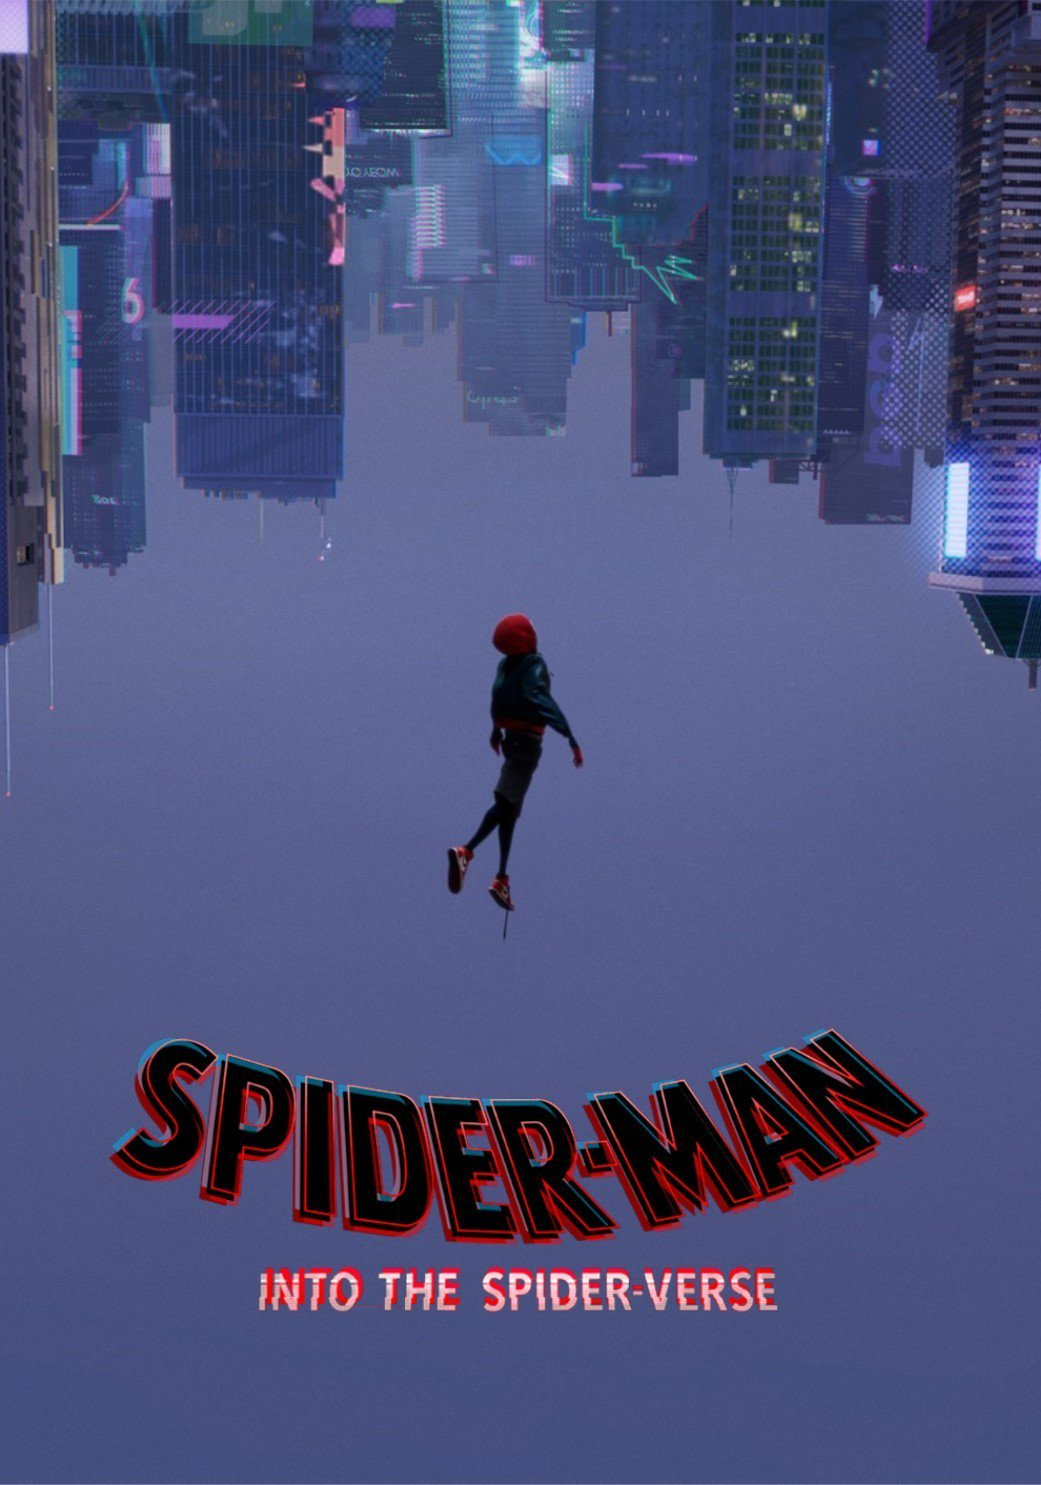 """SPIDER-MAN: INTO THE SPIDER-VERSE"" 예.."